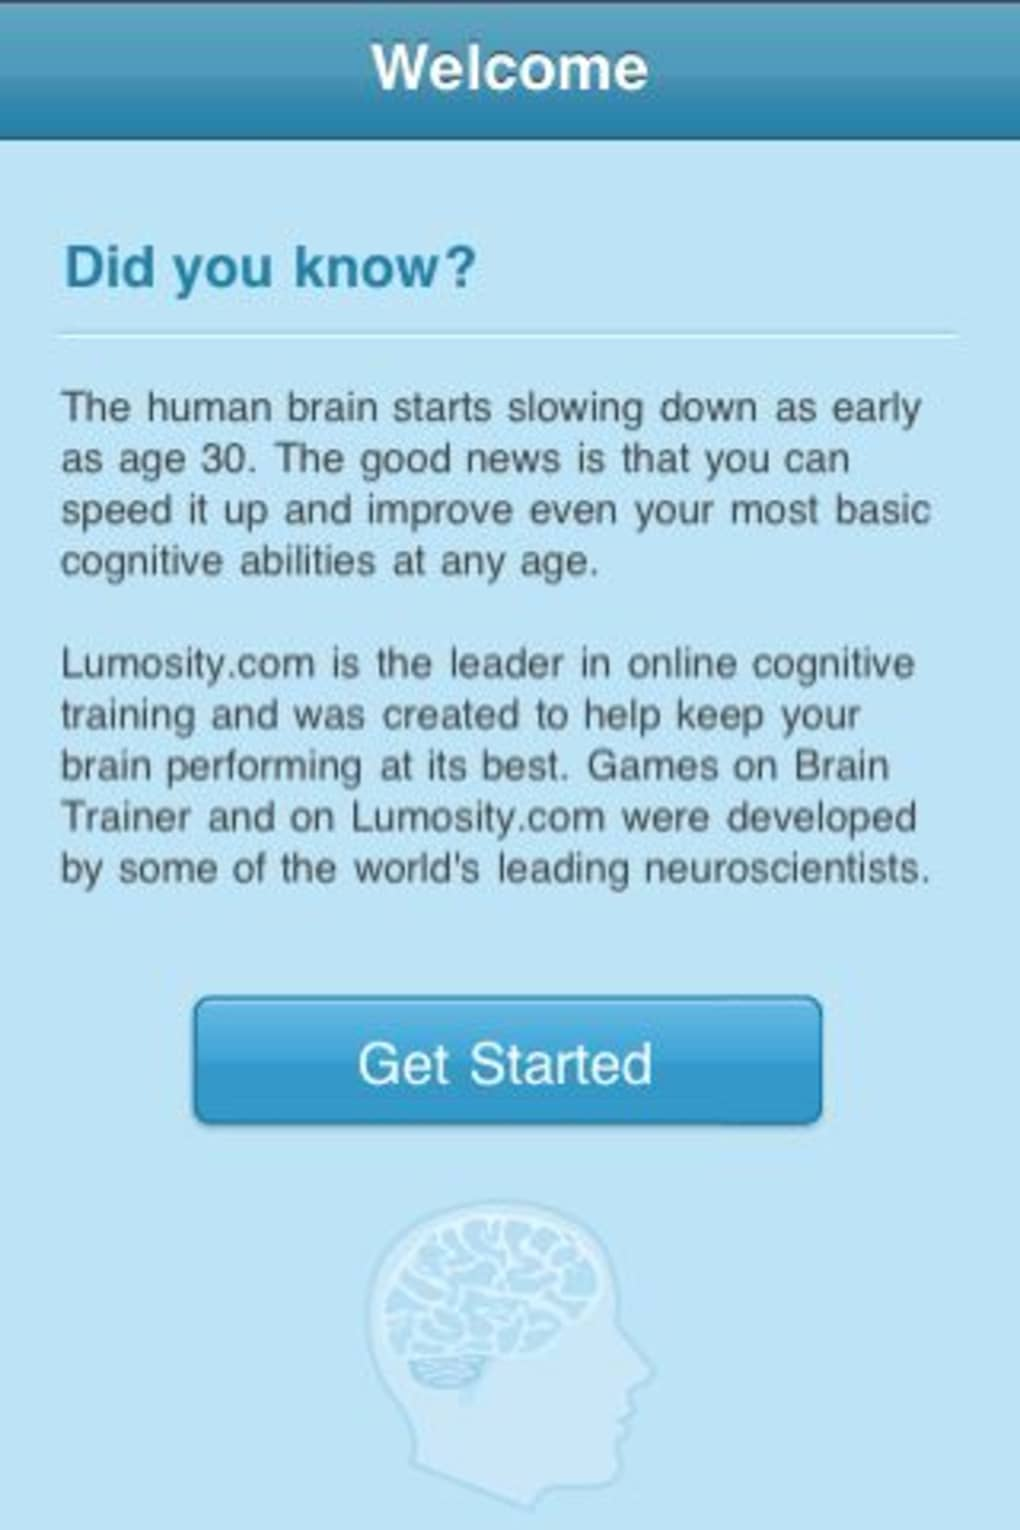 Brain Trainer by Lumosity com for iPhone - Download